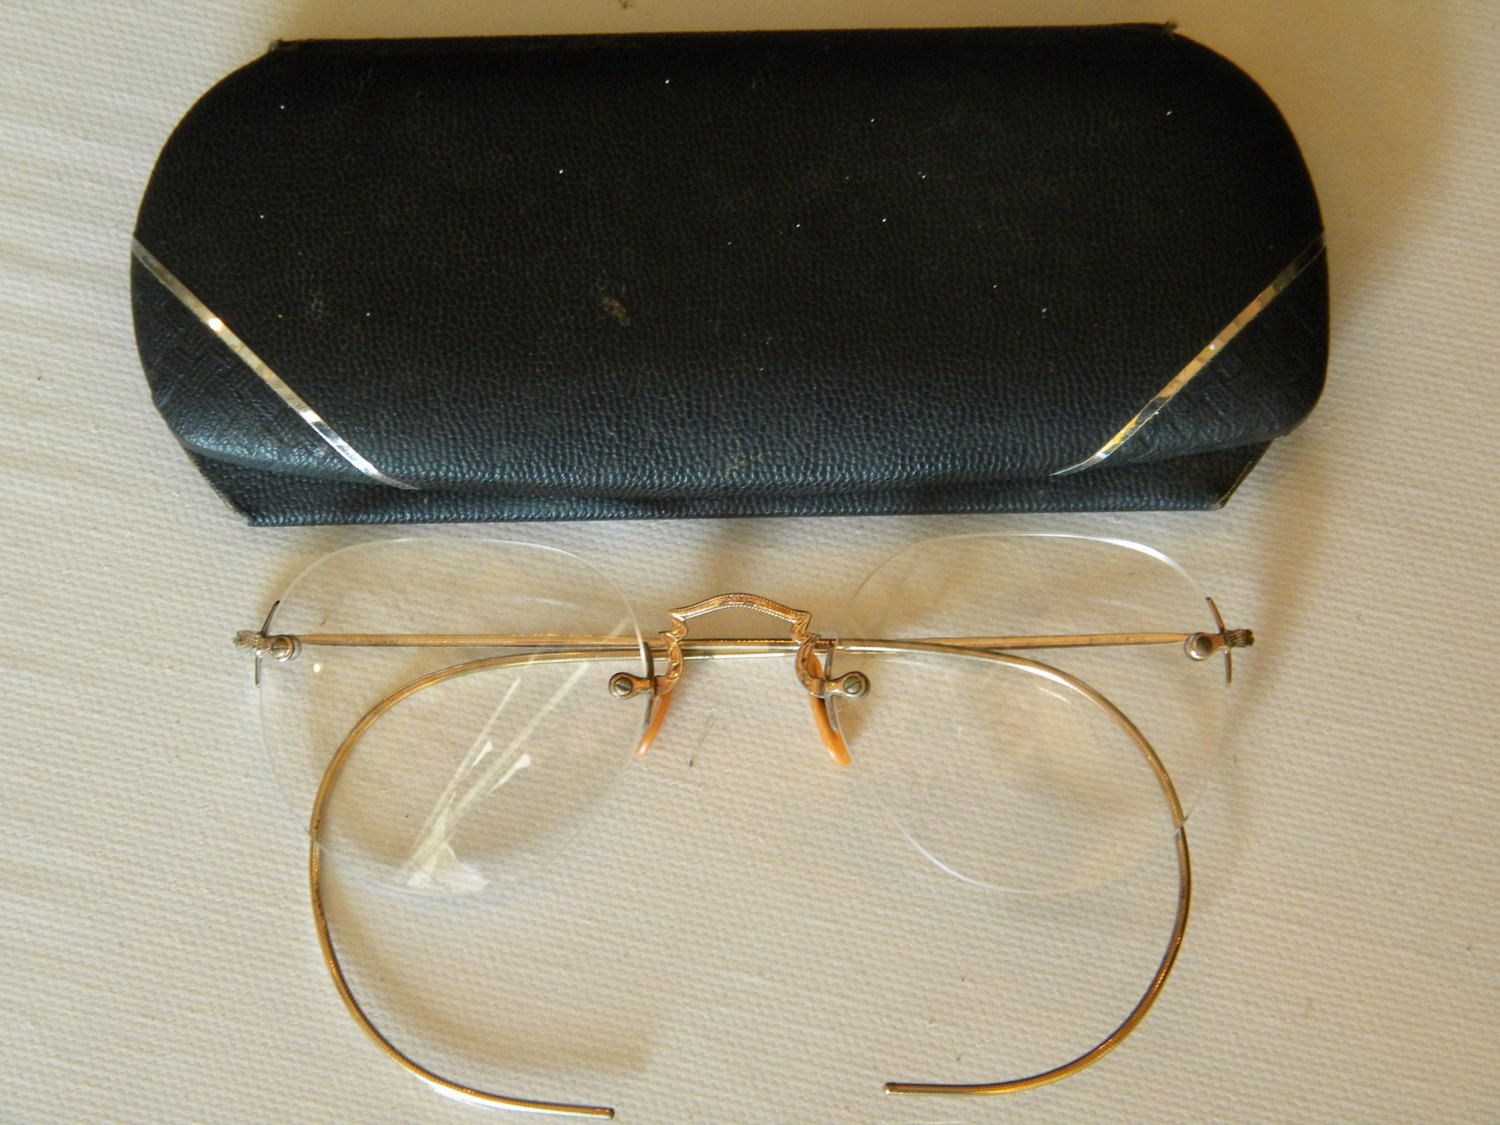 1/10 12k gf Eye Glasses Screwmount with Cable Temples and Case Homer R Gettle Fort Wayne Indiana by EMERALDLAKEJEWELS on Etsy